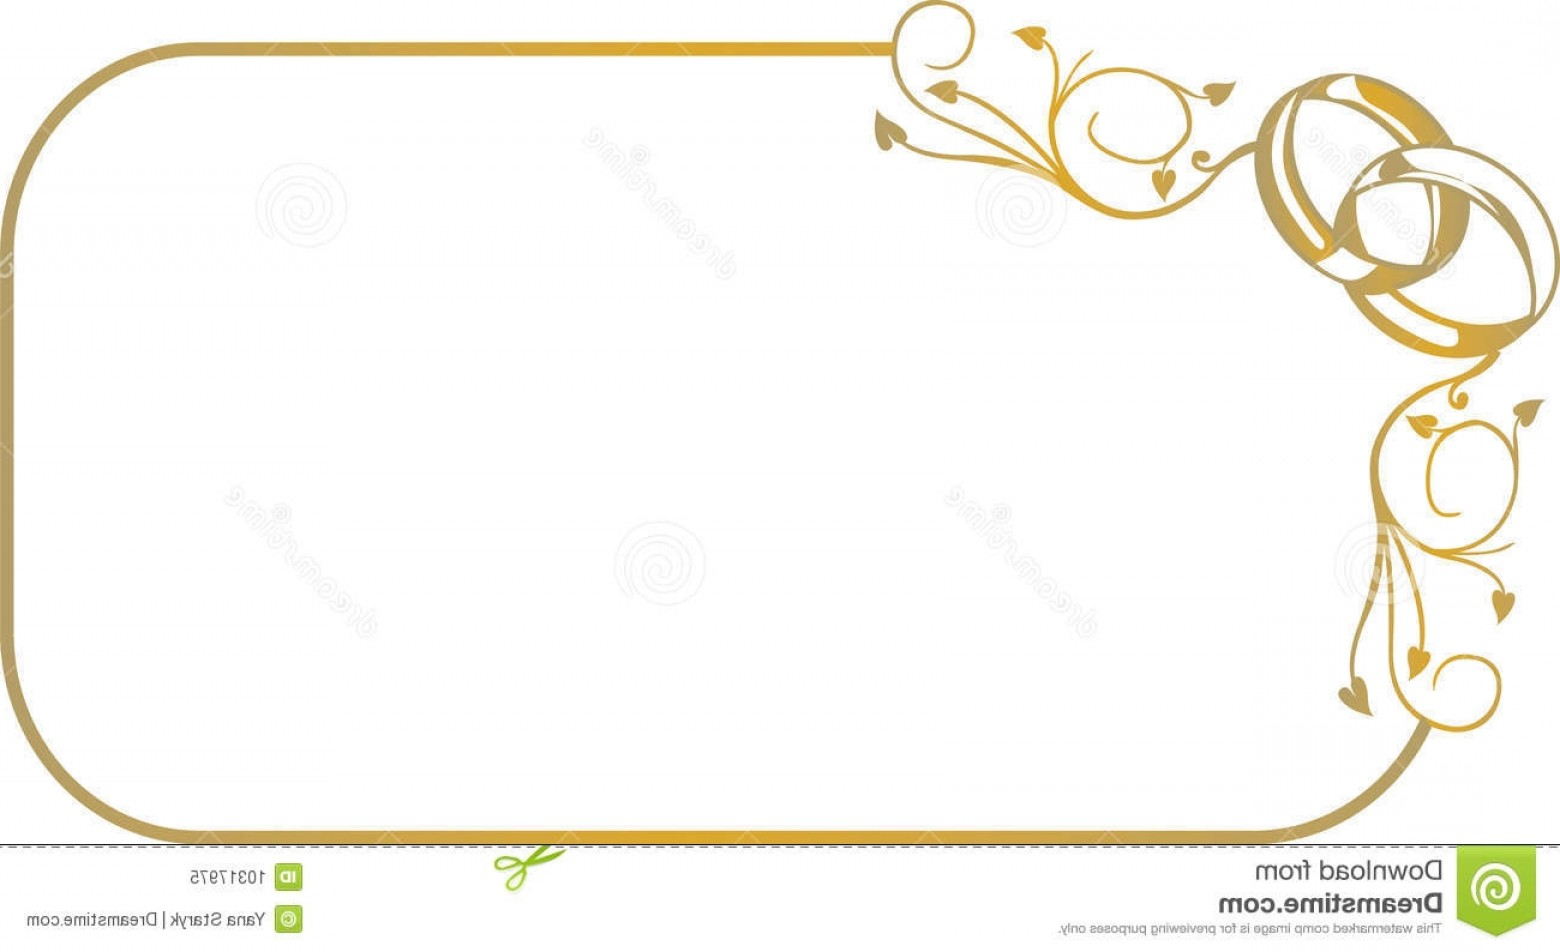 60 Wedding ring clipart border for free download on Premium.